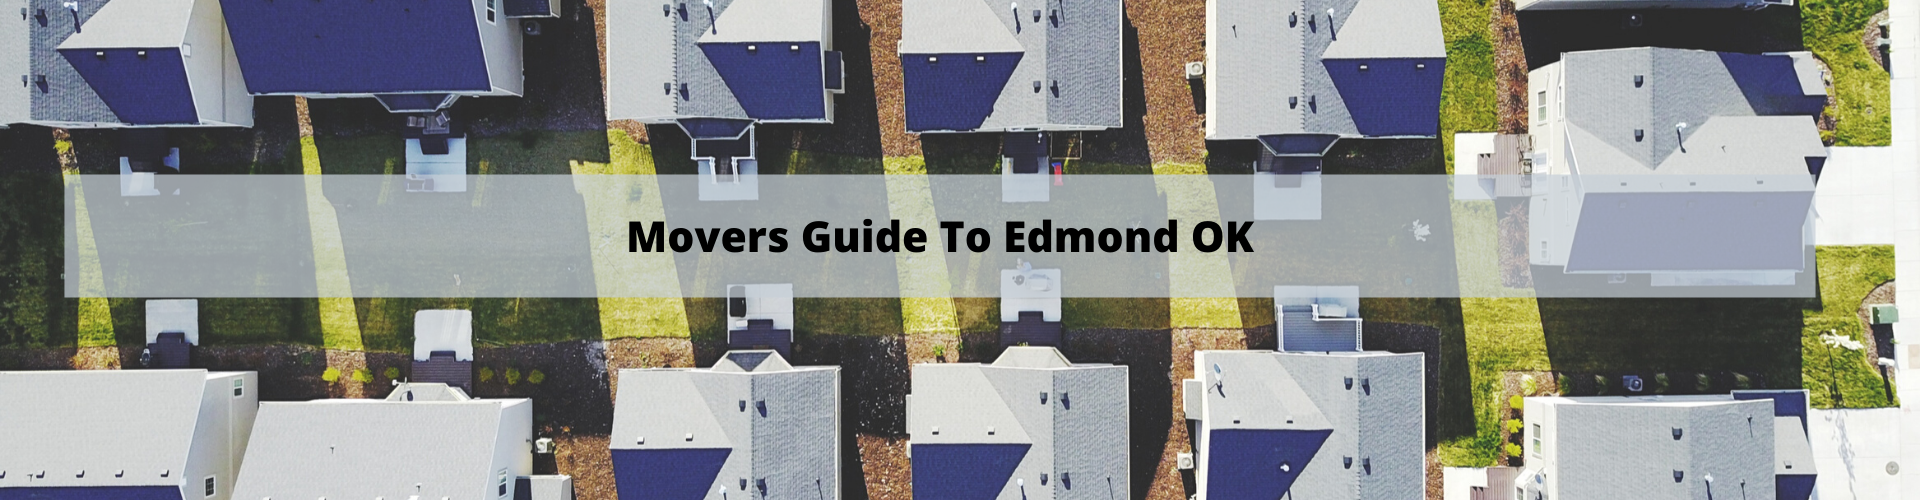 Movers Guide to Edmond OK